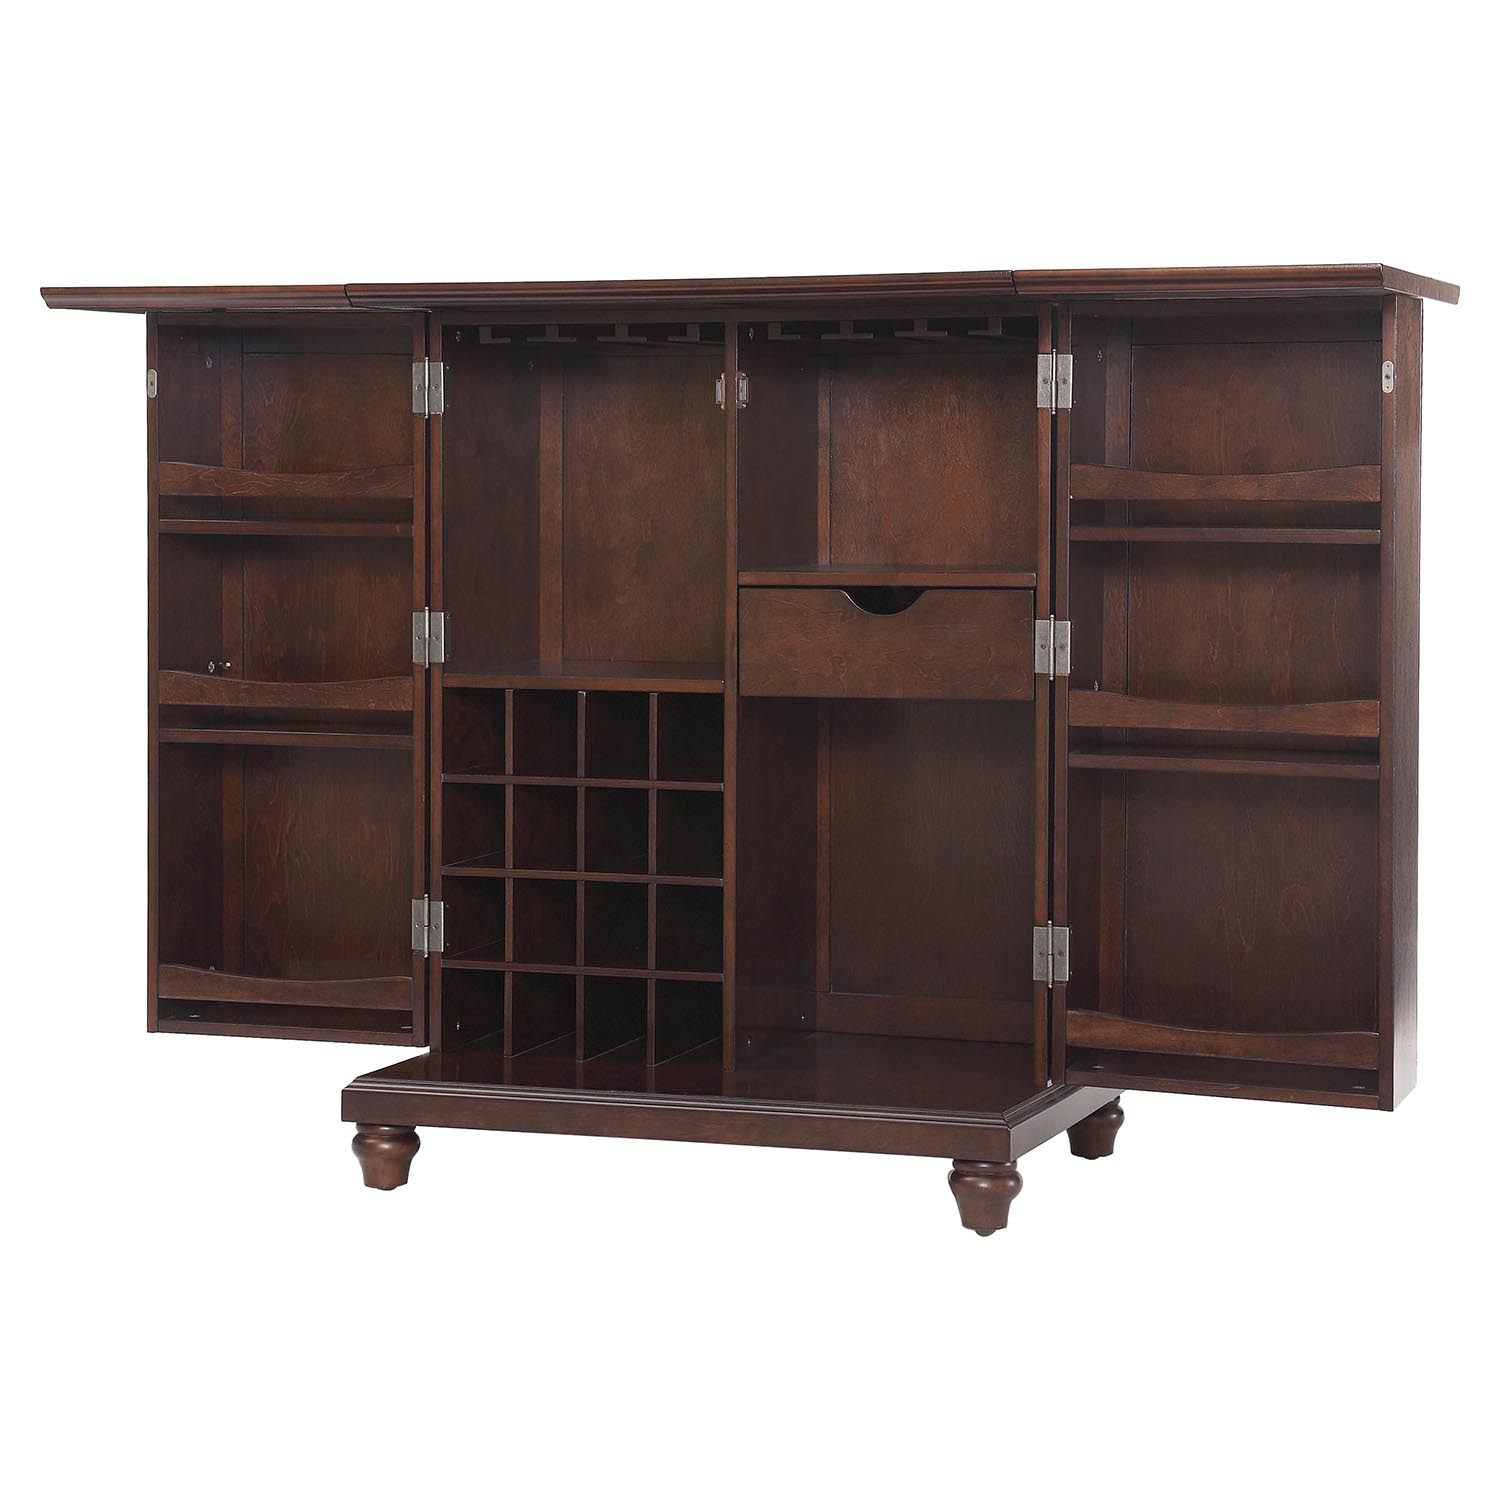 Cambridge Expandable Bar Cabinet - Vintage Mahogany - CROS-KF40001DMA